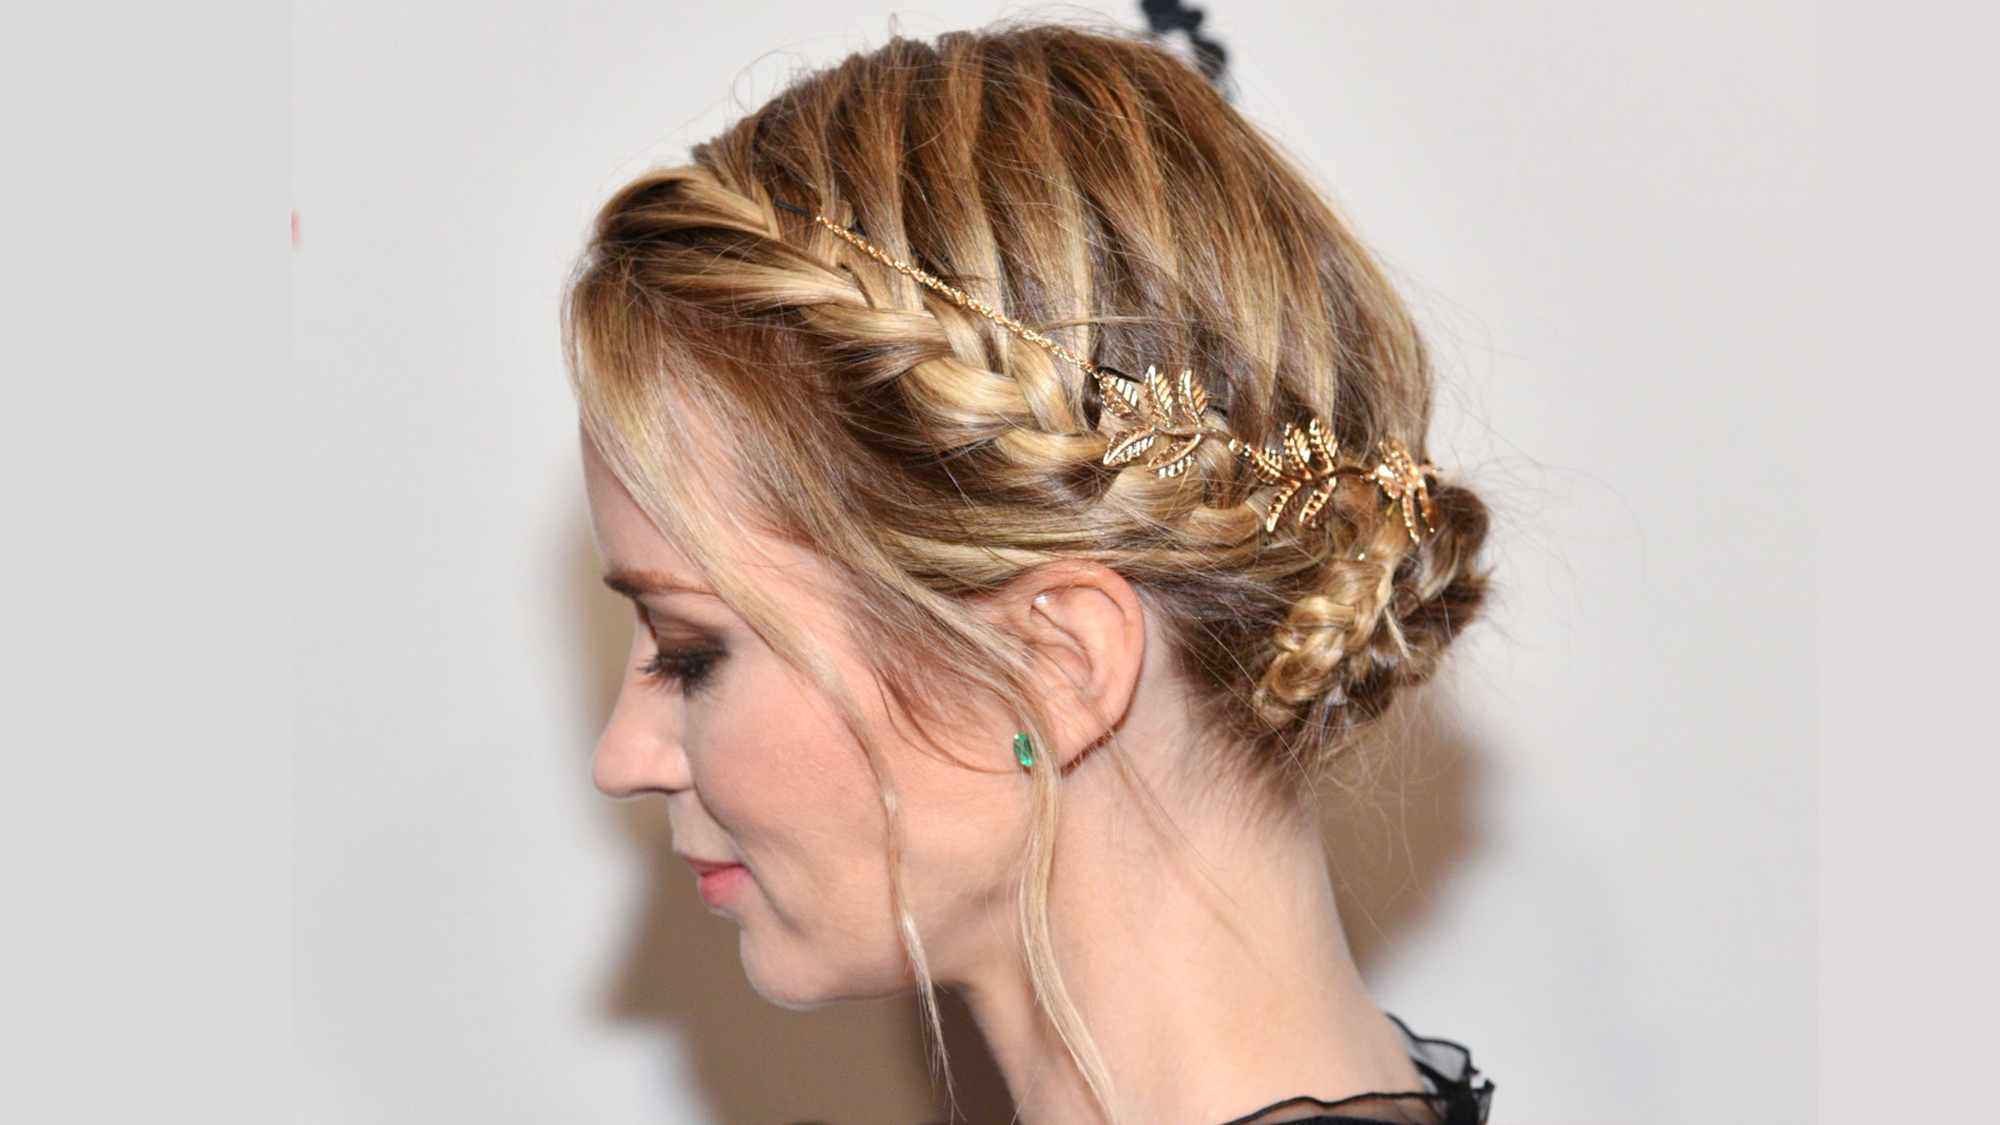 Most Up To Date Solo Braid Hairstyles Inside Plait Hairstyles To Take Straight To Your Hairdresser's This (View 3 of 20)